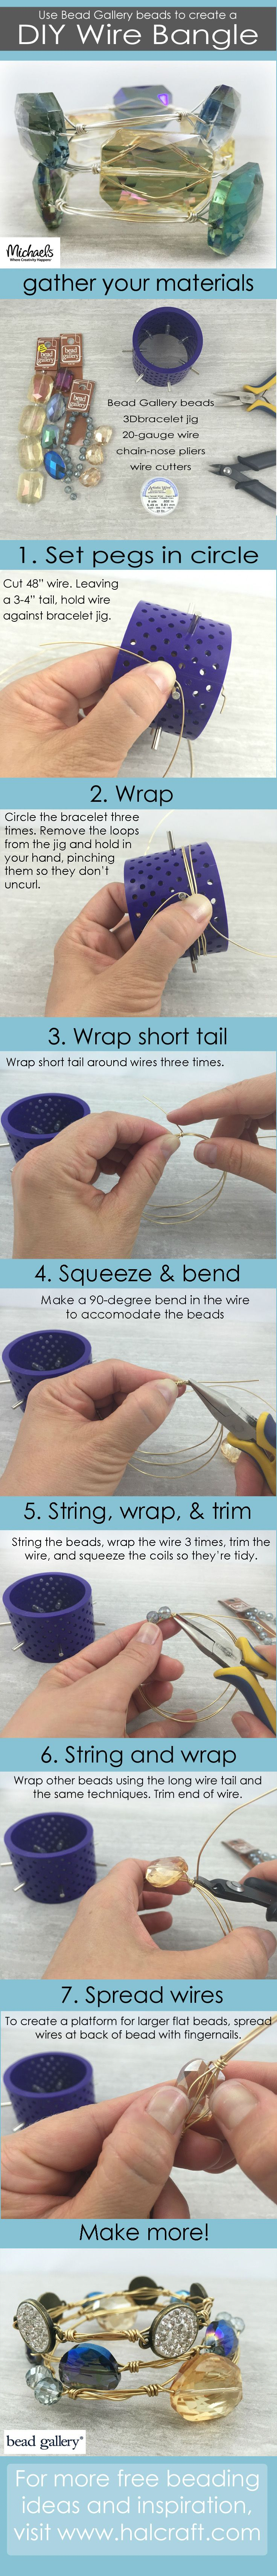 DIY wire wrapped bangles tutorial using Bead Gallery beads and Artistic Wire #madewithmichaels